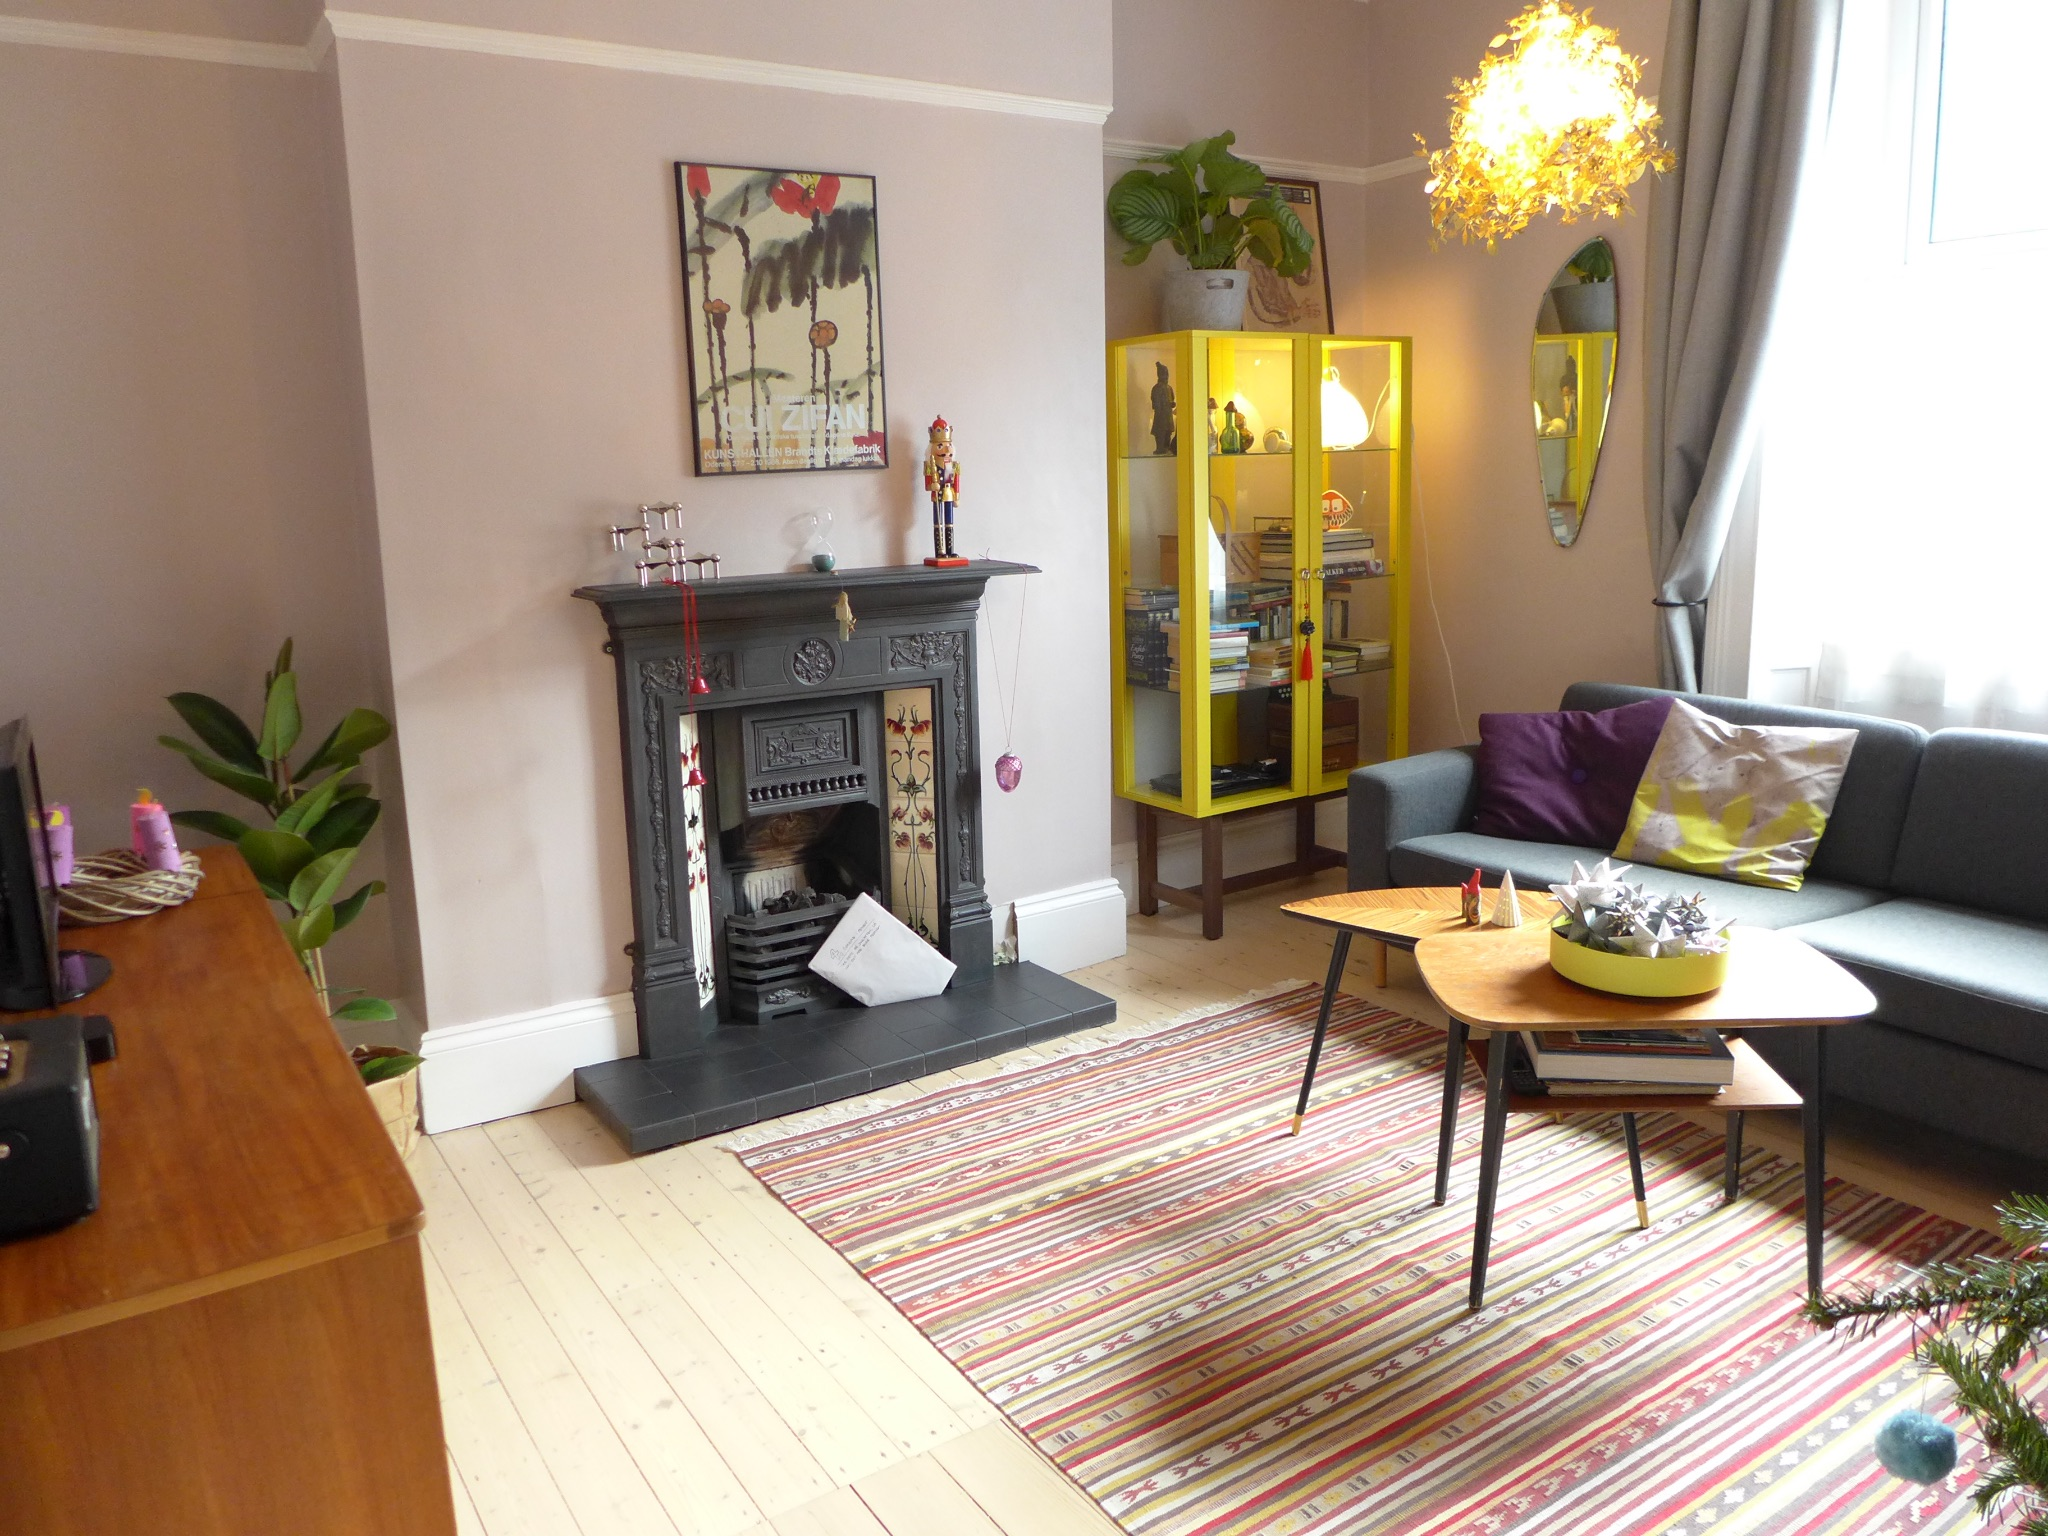 4 bedroom end terraced house For Sale in Calderdale - Photograph 4.